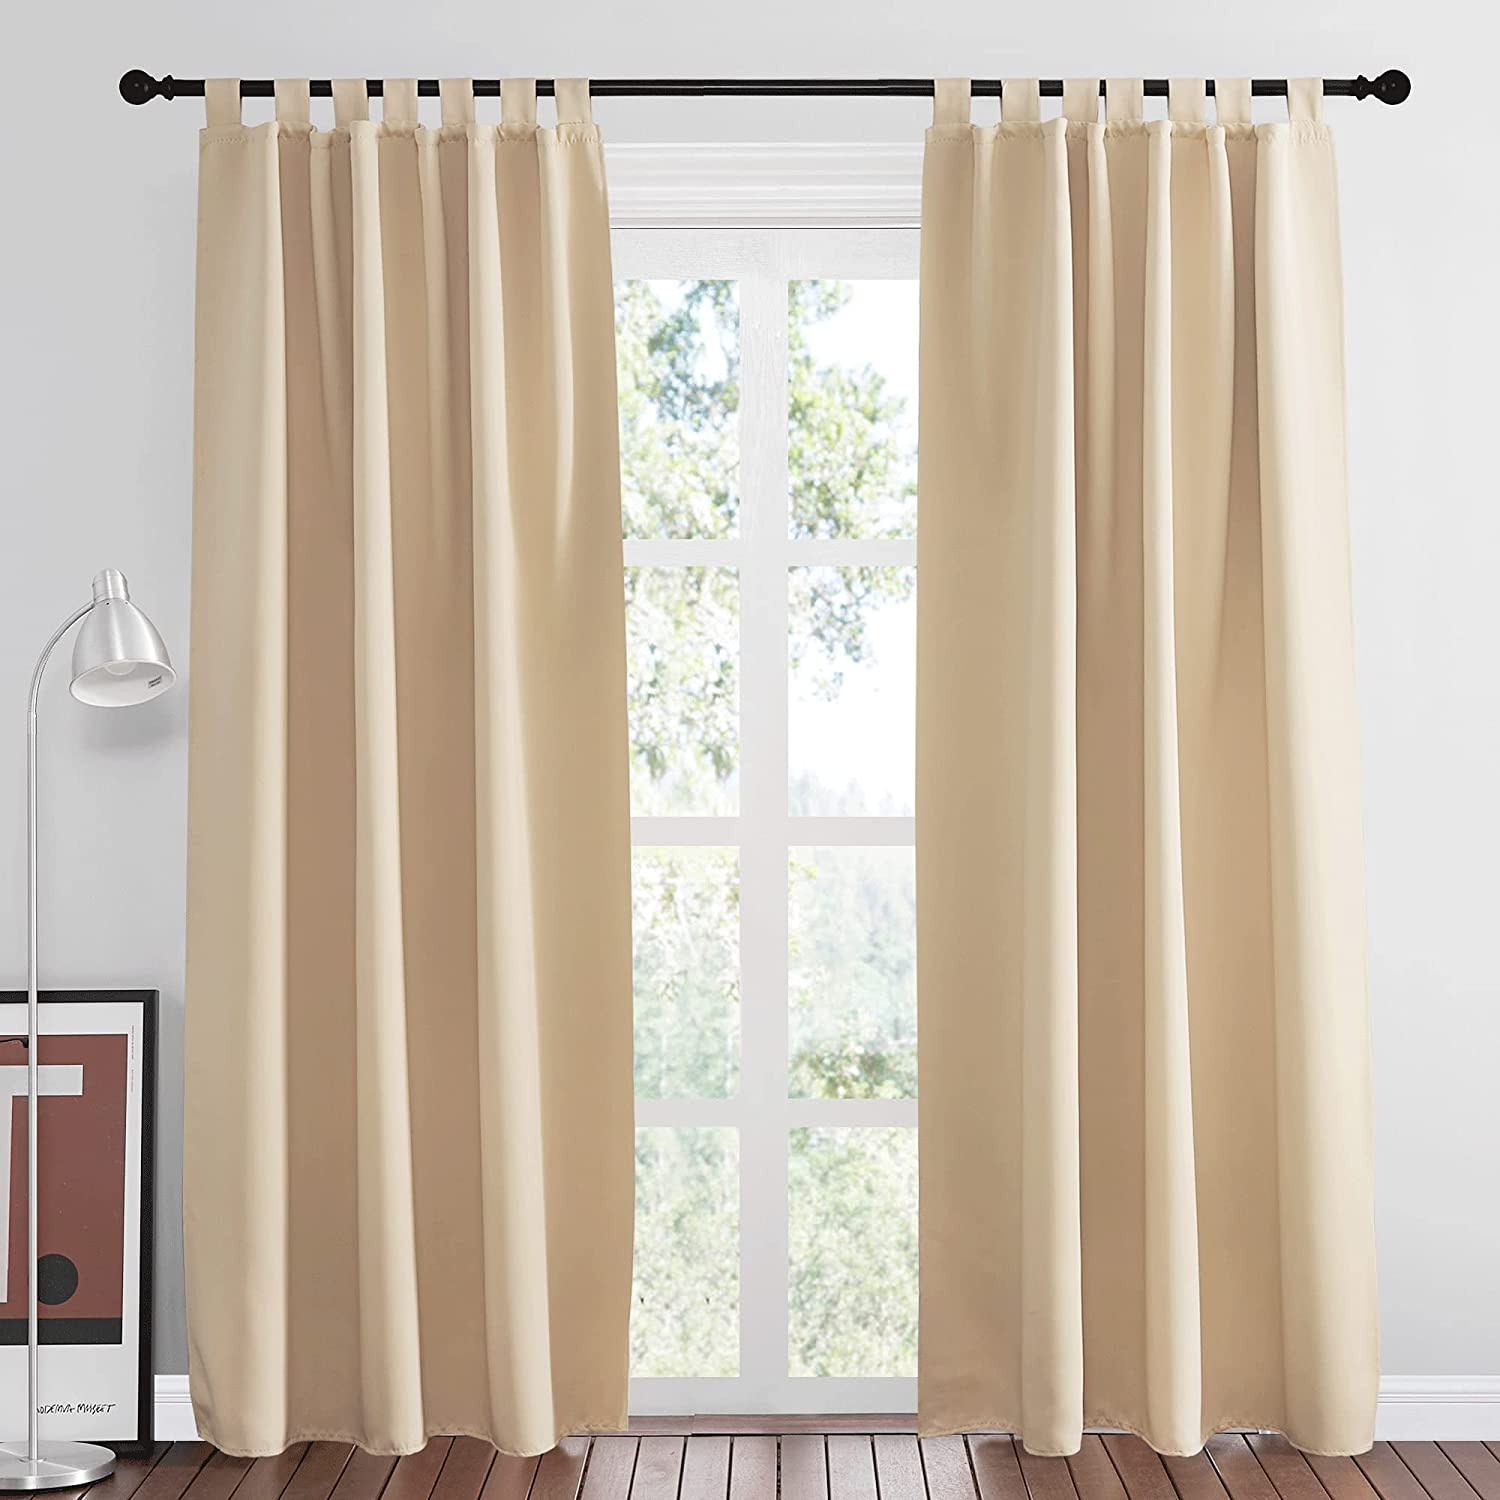 NICETOWN Bedroom Room Darkening Curtains - Home Fashion Thermal Insulated Solid Tab Top Room Darkening Window Curtains for Hall Room & Office (Biscotti Beige, 1 Pair, 52 inches Wide by 84 inches Long)